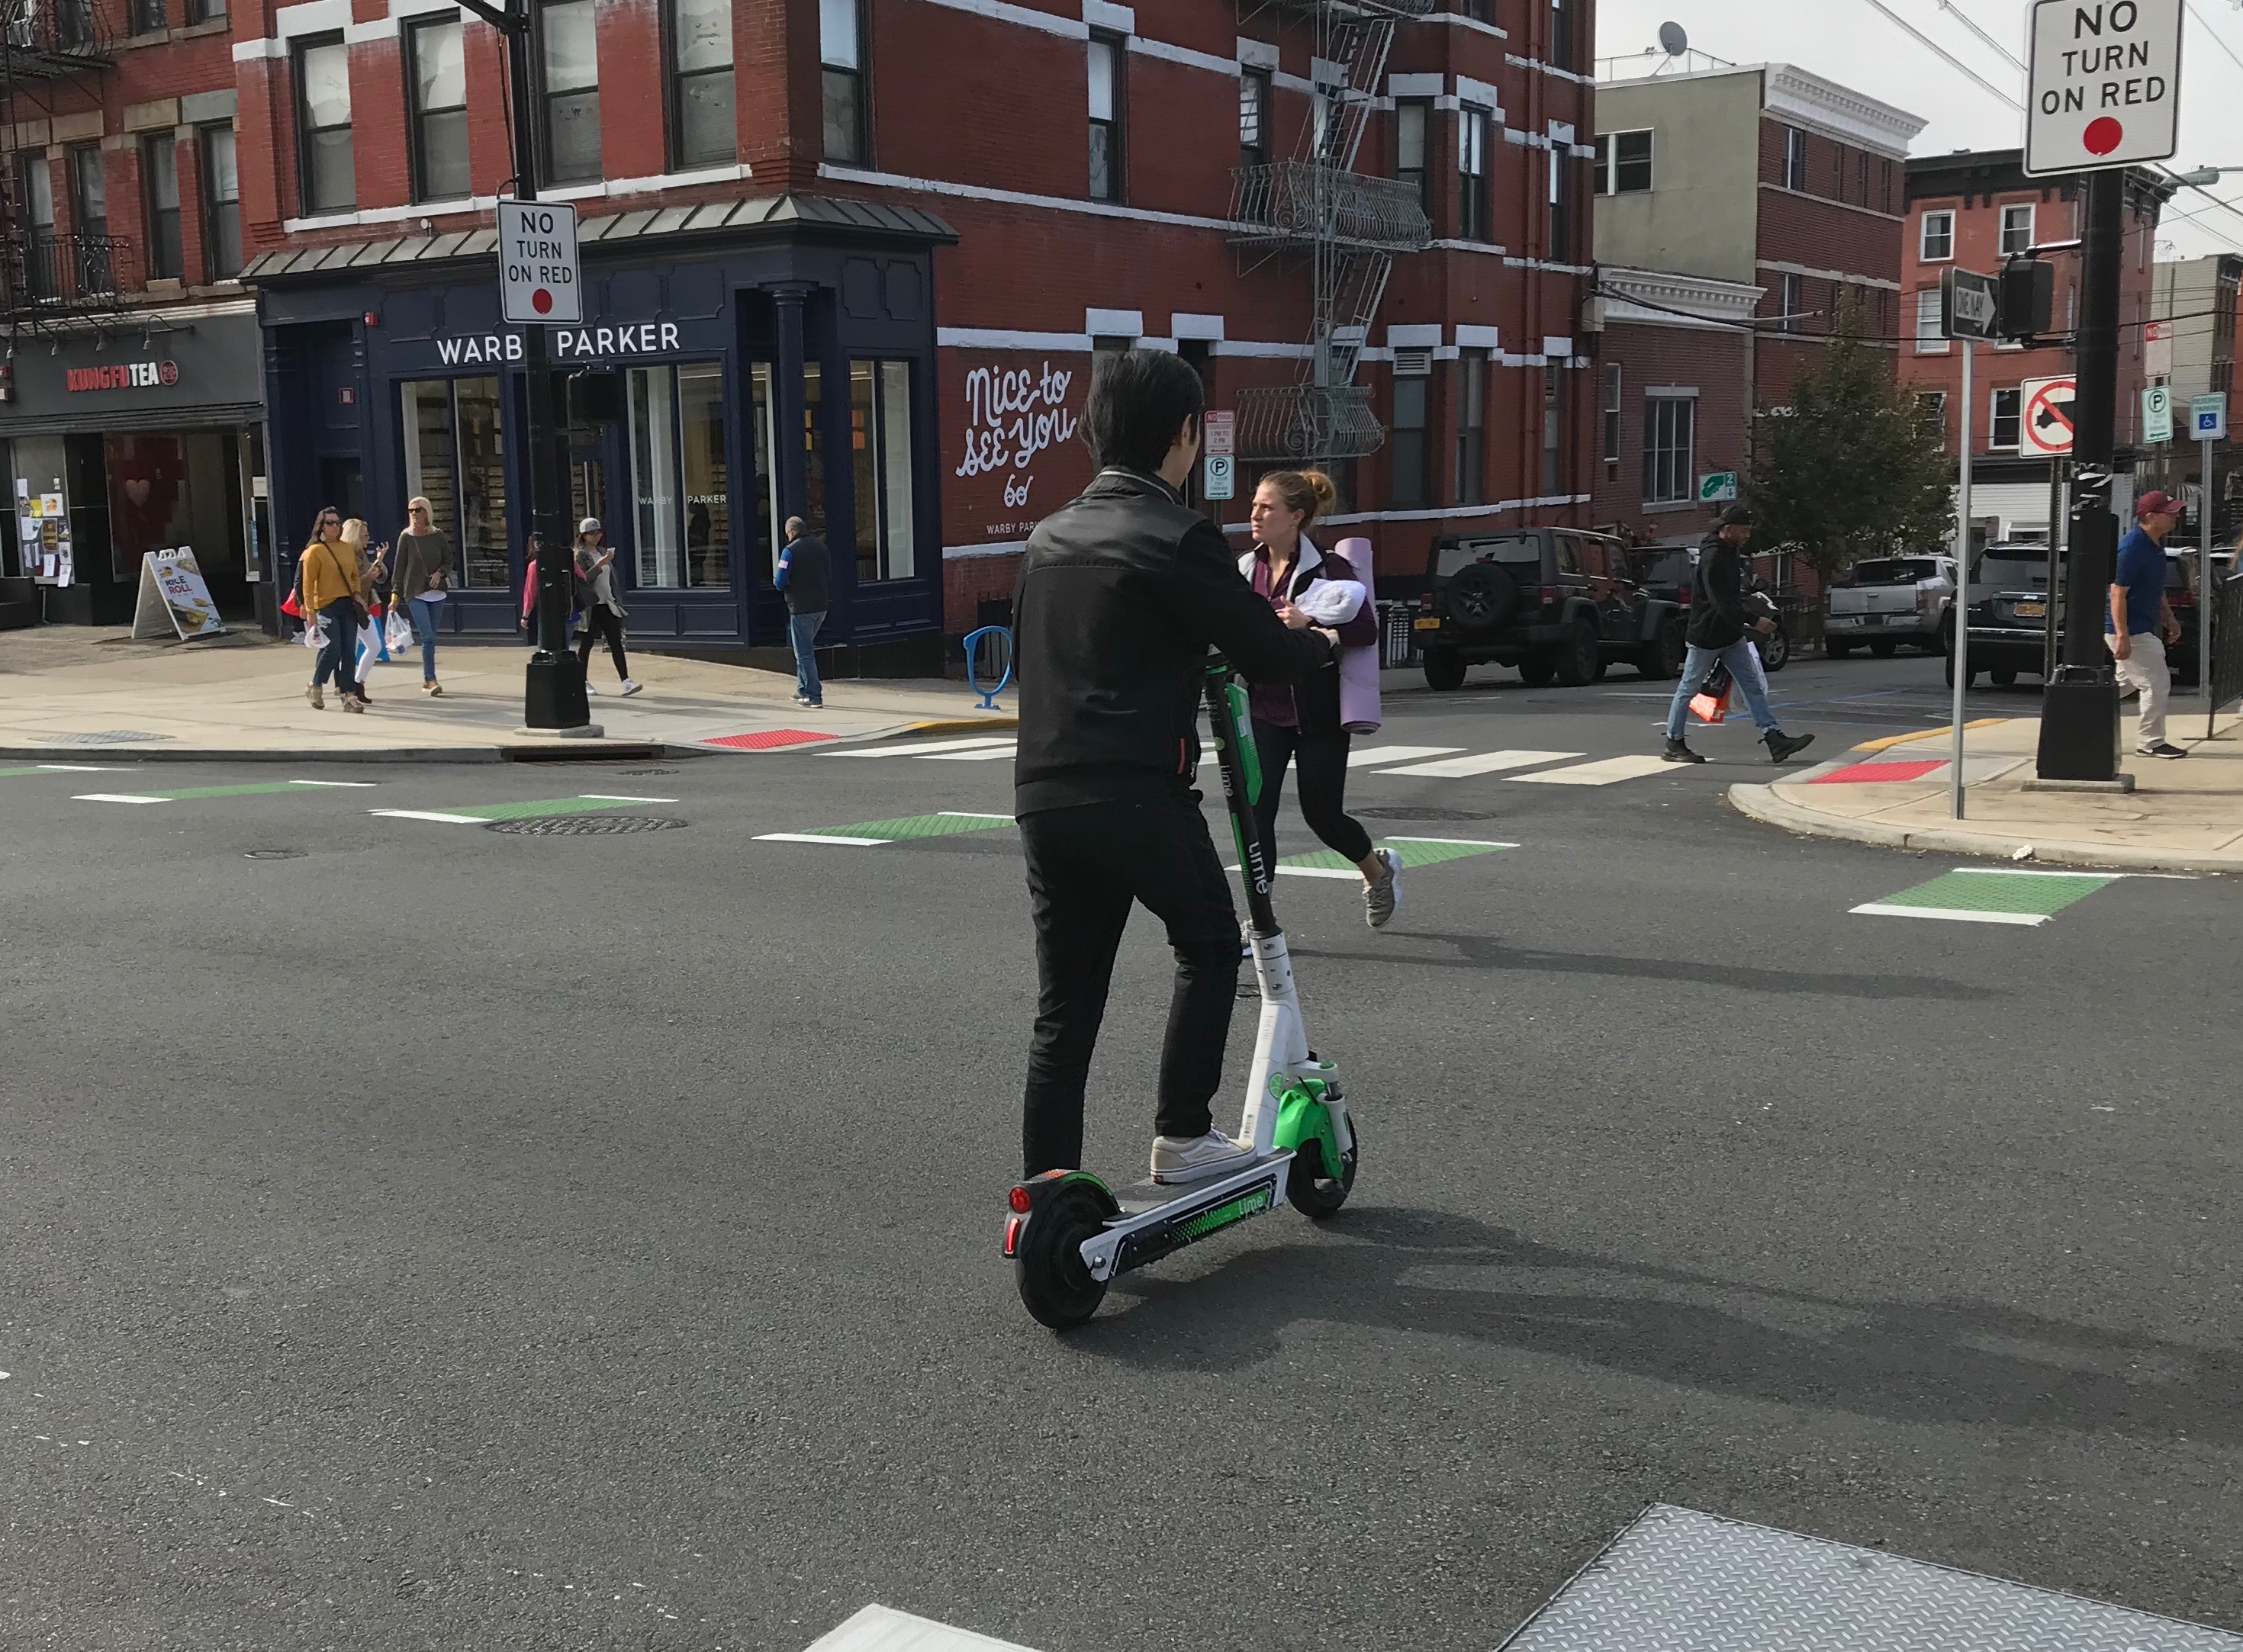 E-scooters aren't just a hipster fad. I rode one and I'm sold on it.